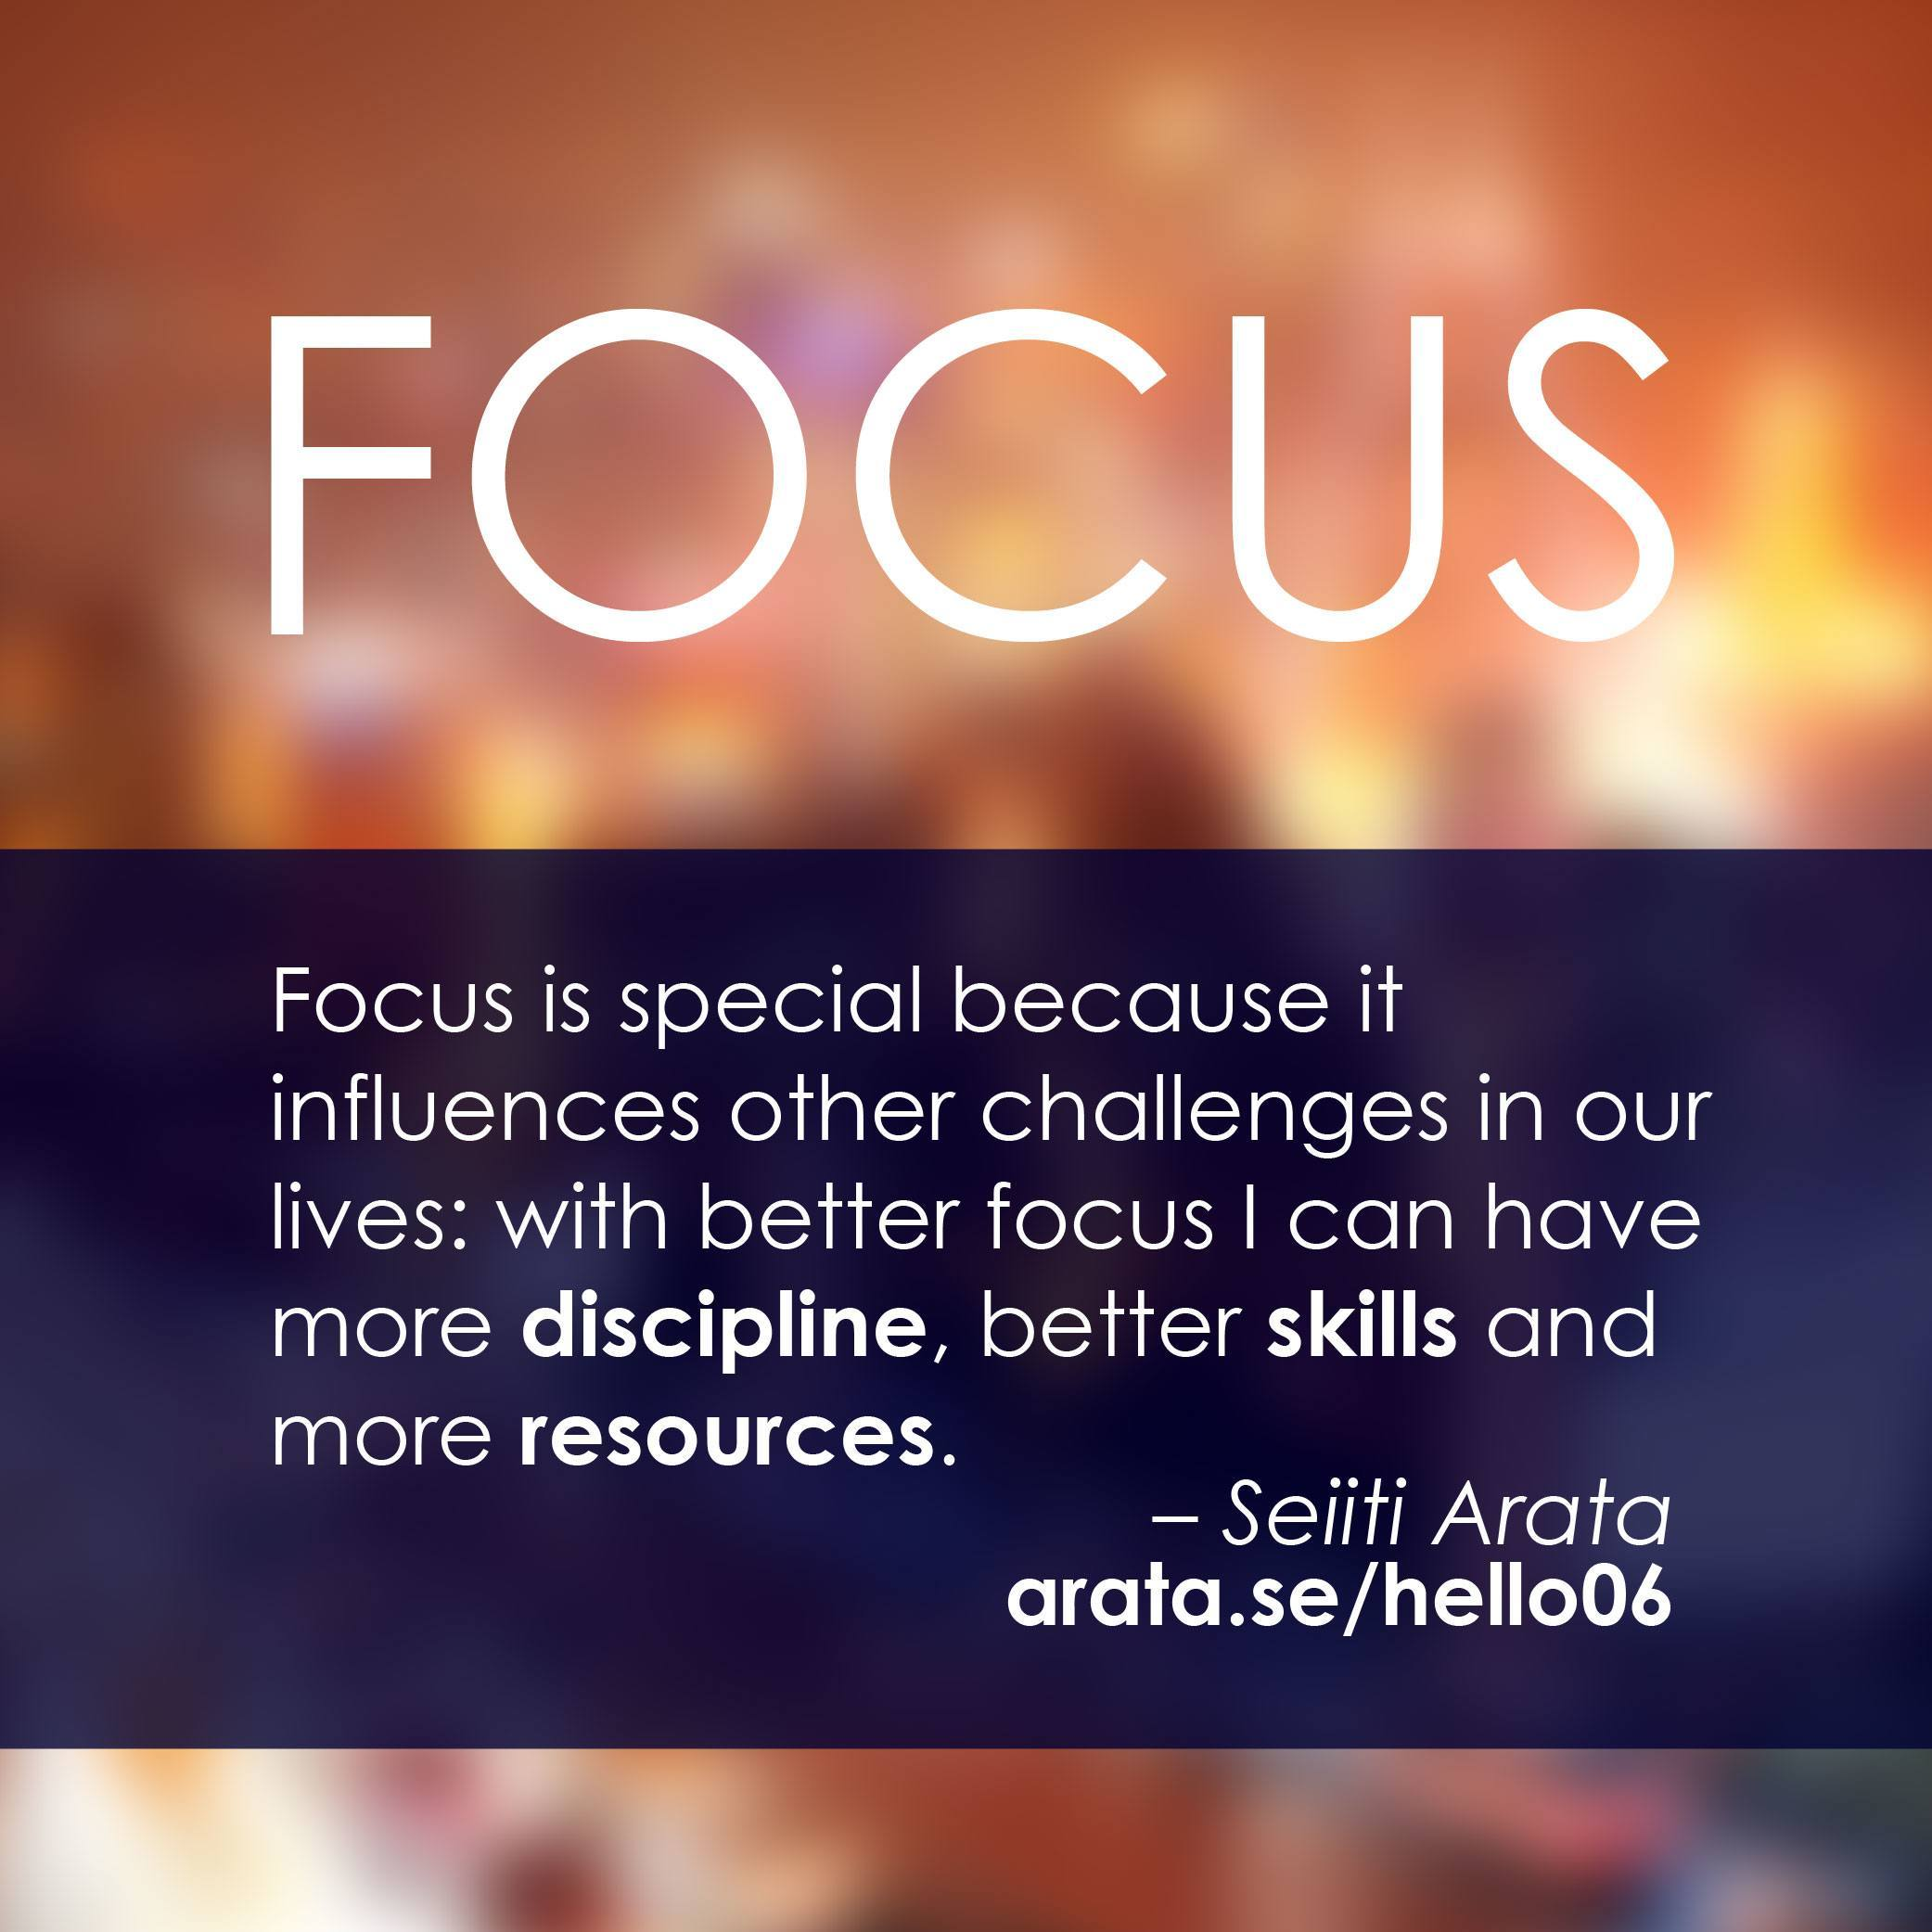 Focus is special because it influences other challenges in our lives: with better focus I can have more discipline, better skills and more resources.